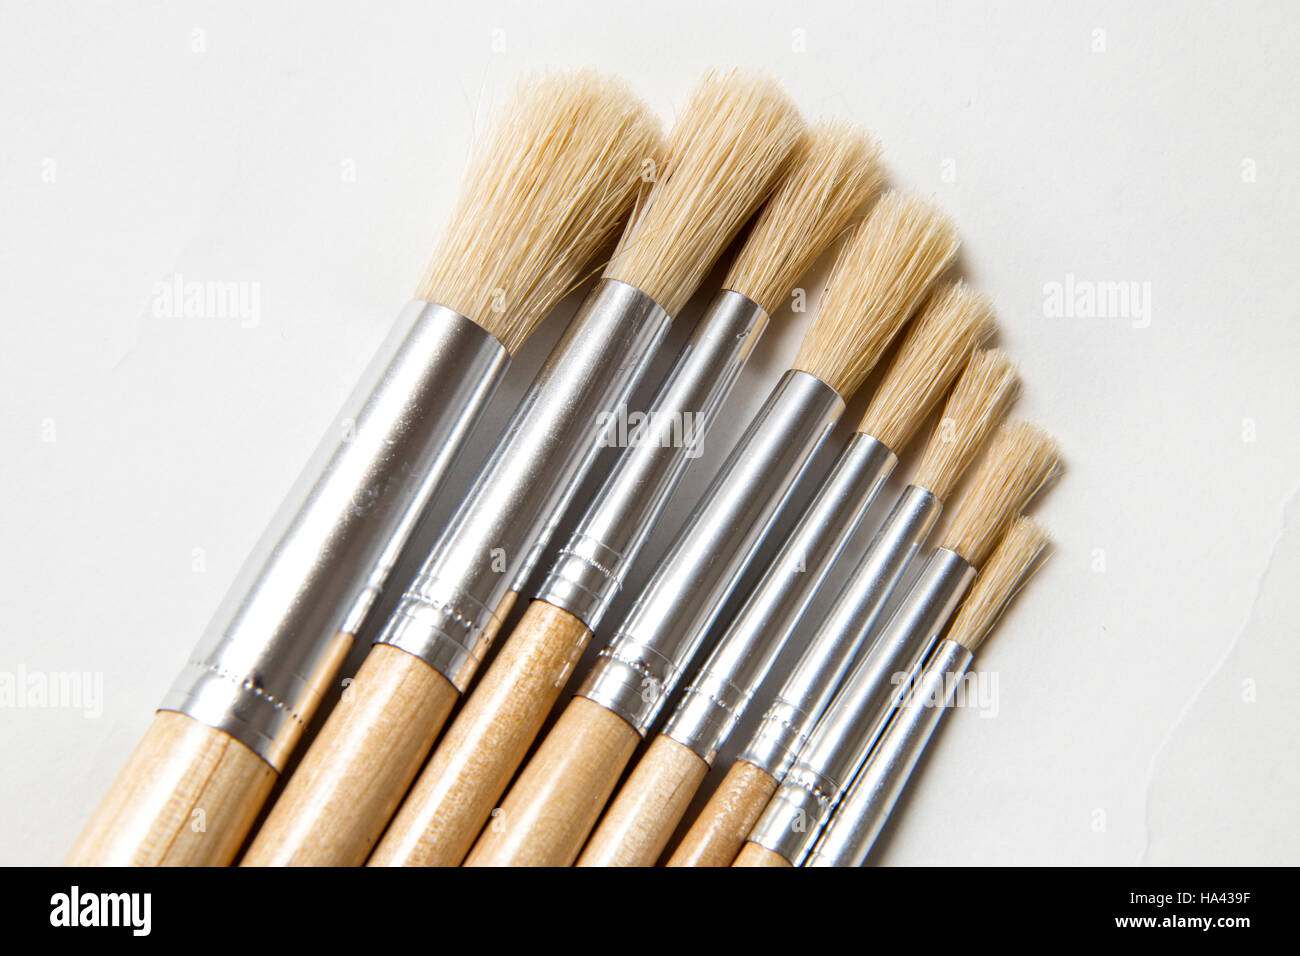 A set of artists brushes on a plain white background, different sizes and widths. - Stock Image